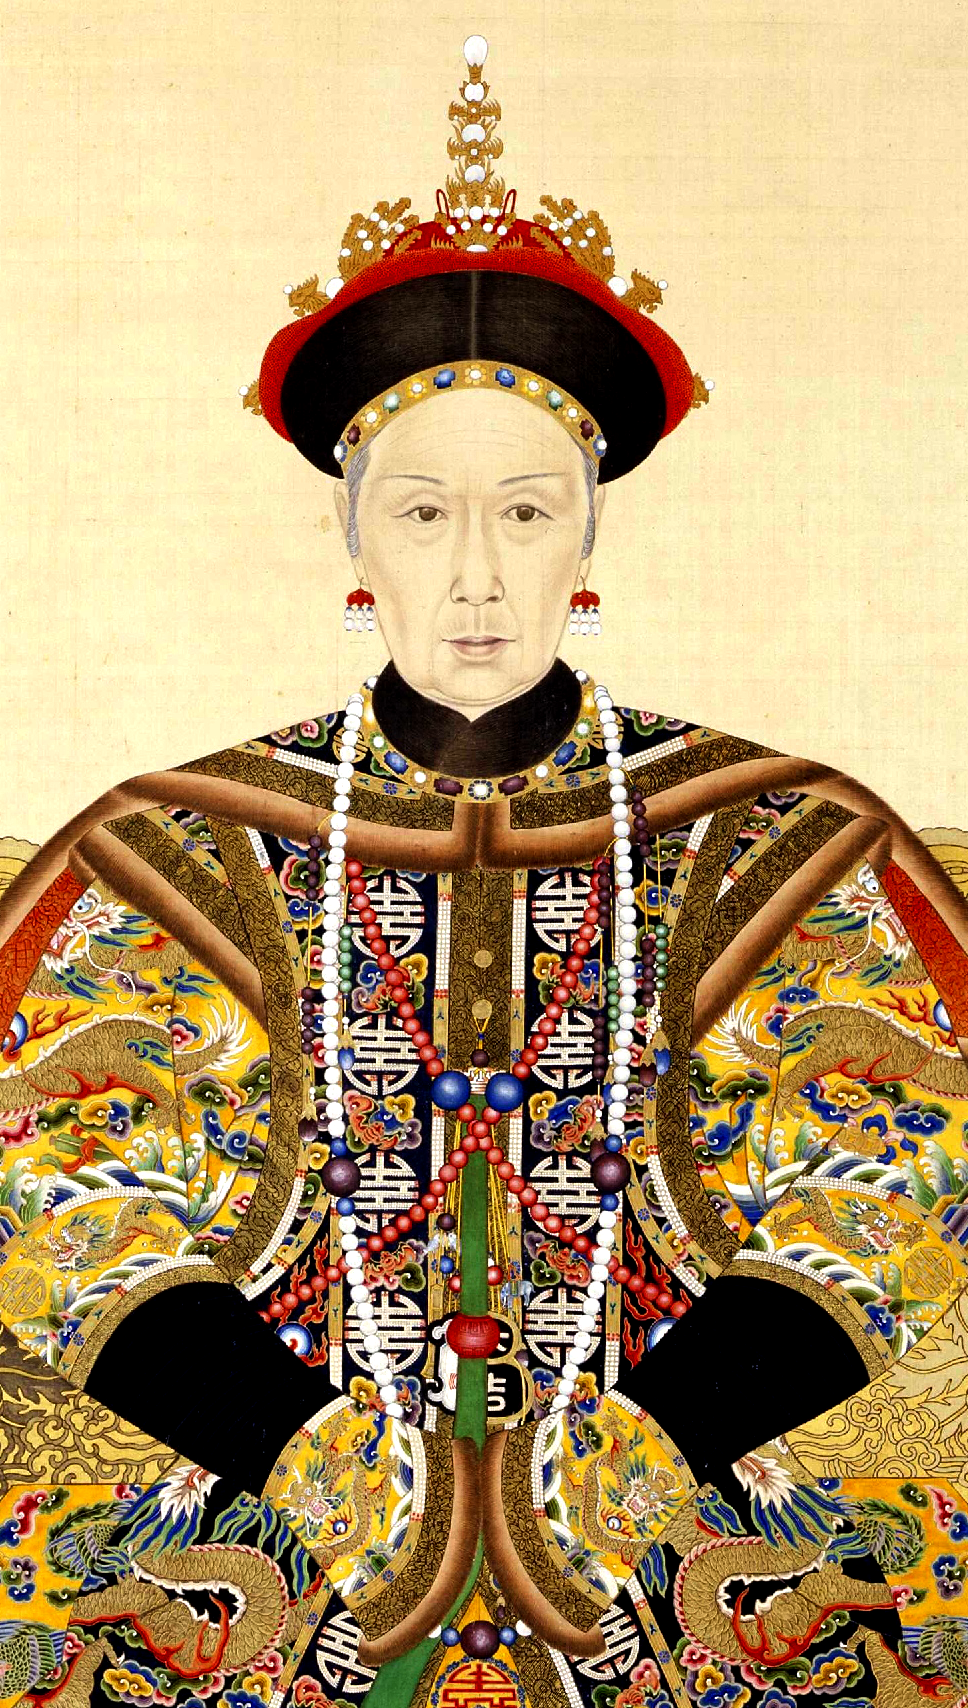 Fichier:The Imperial Portrait of the Ci-Xi Imperial Dowager Empress.PNG